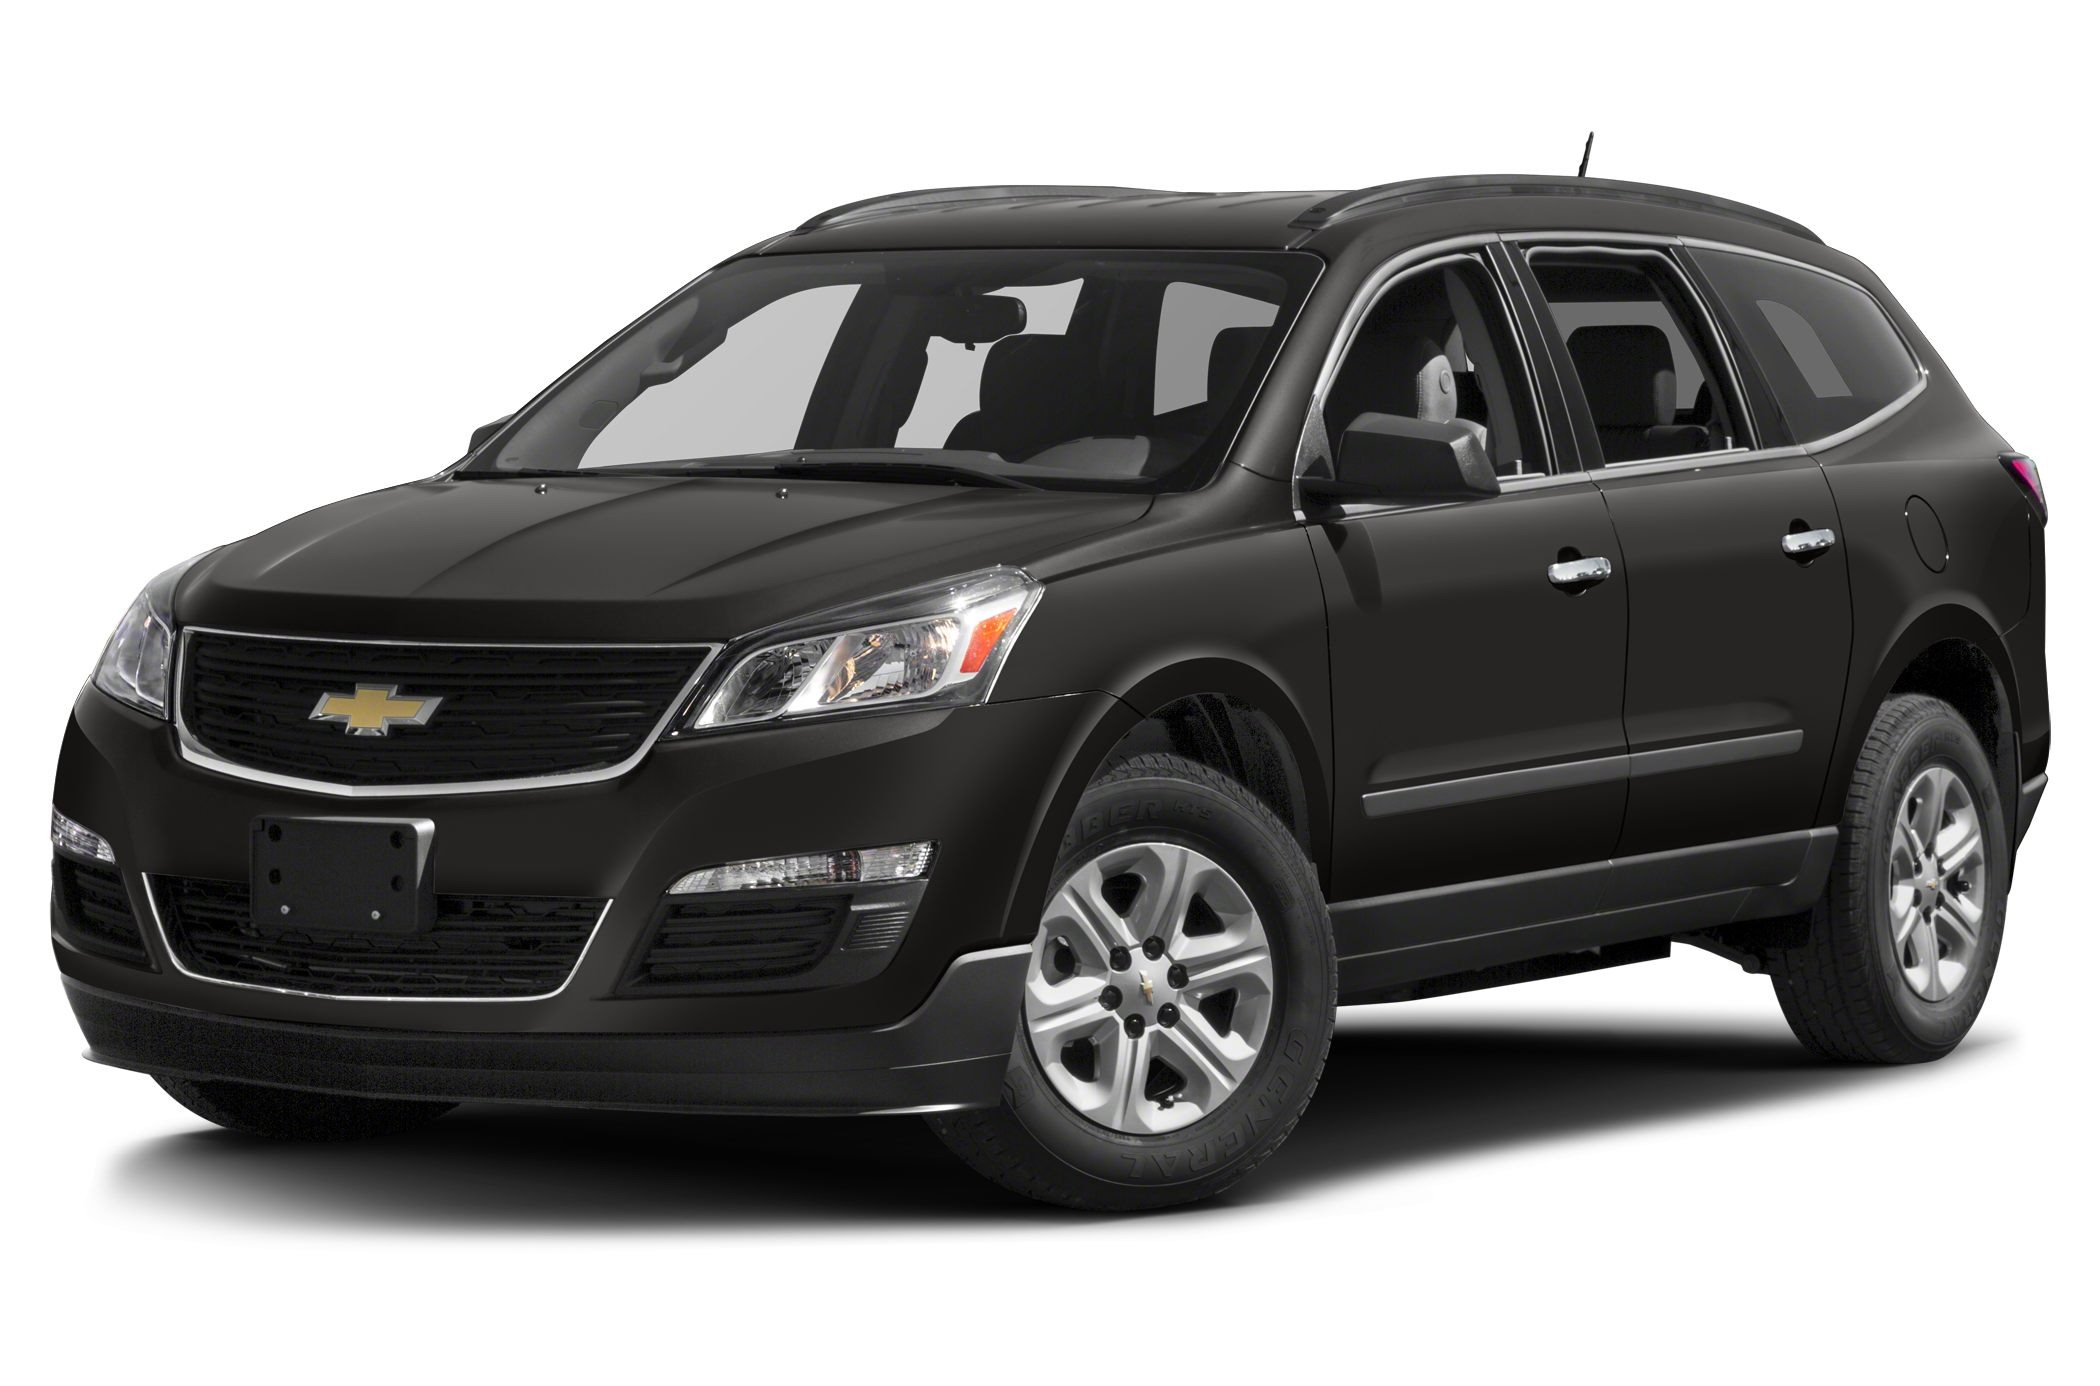 chevy traverse third row seating. Black Bedroom Furniture Sets. Home Design Ideas